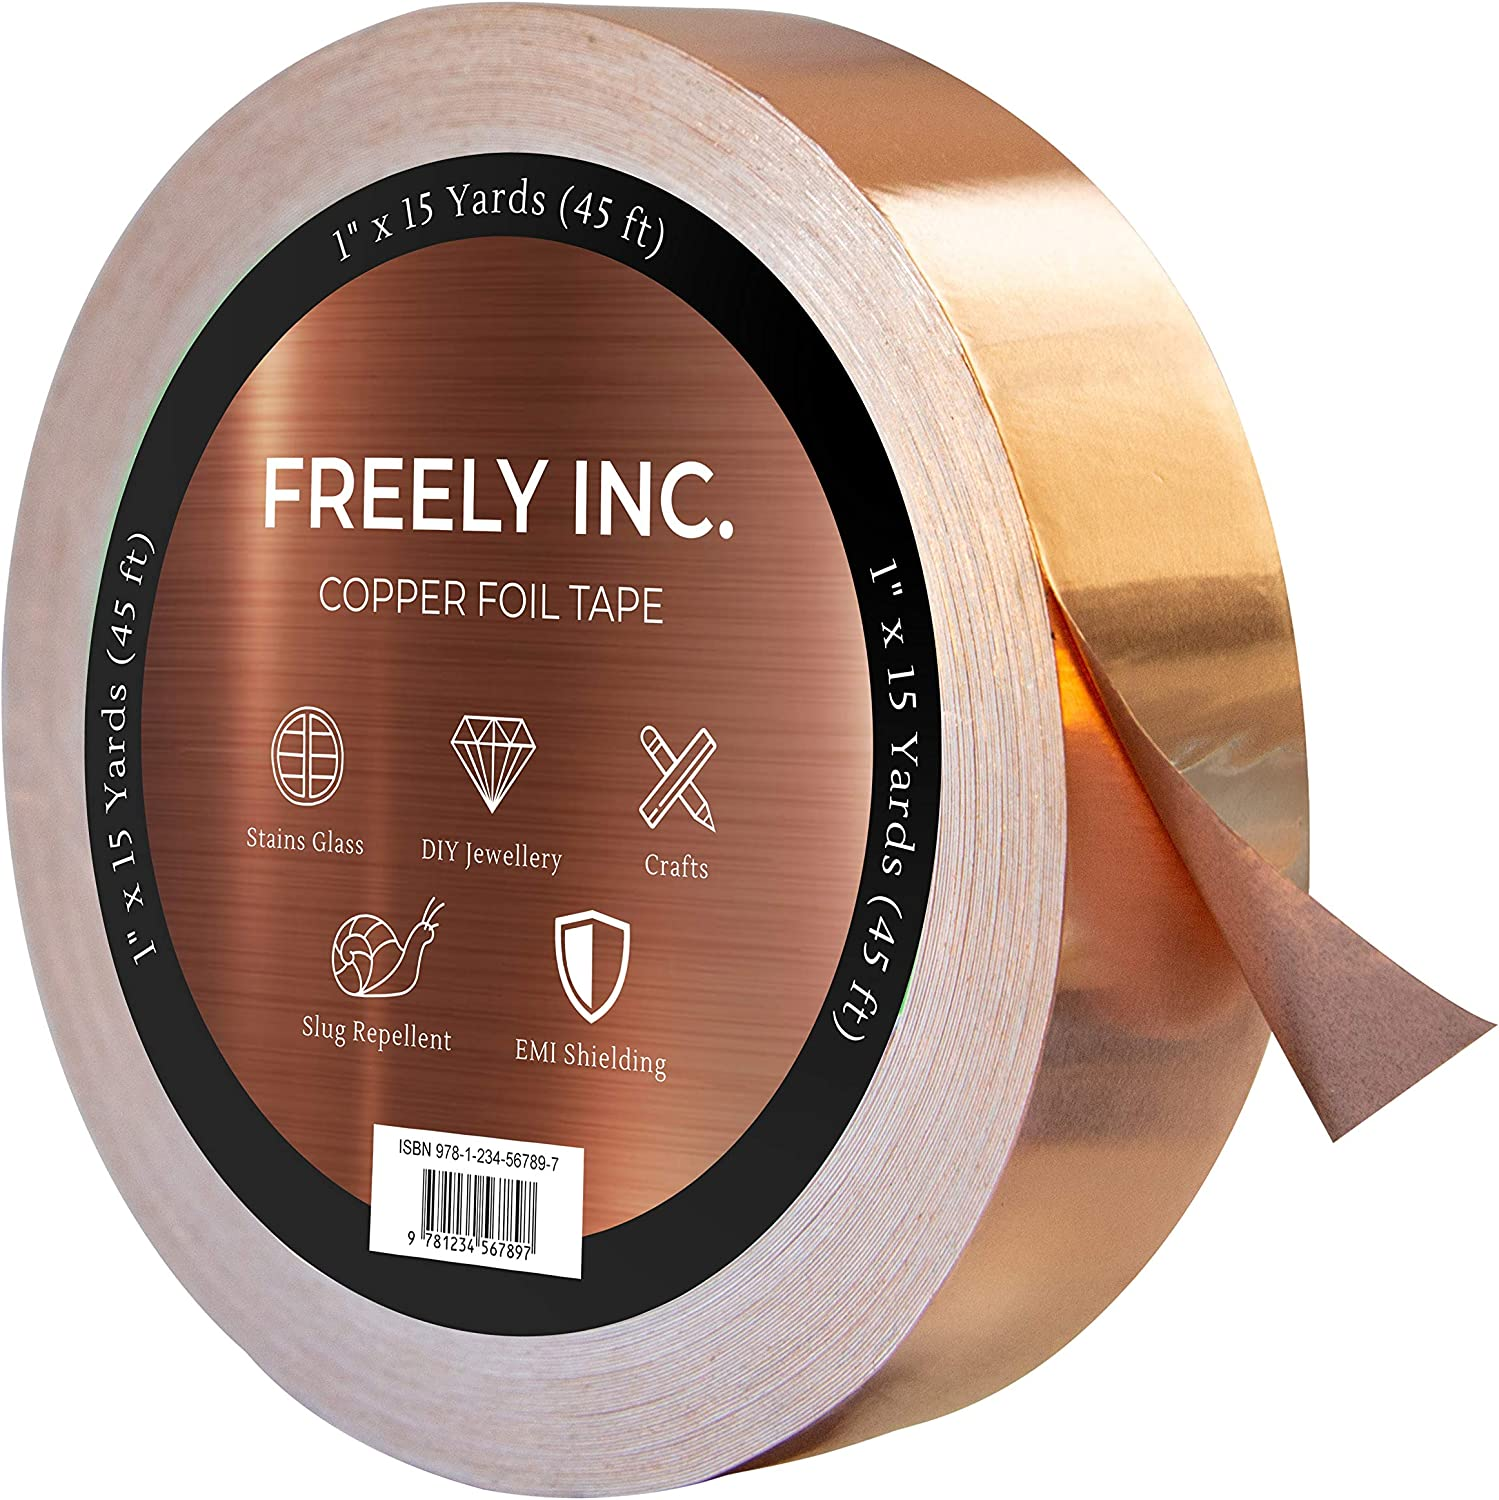 Freely Copper Foil Tape – Now 150% Thicker - Conductive Adhesive - 1 Pack (1Inch x 45FT x 1.5MIL) – Slug Repellent, EMI Shielding, Crafts, DIY Projects – Best Quality, Great Price